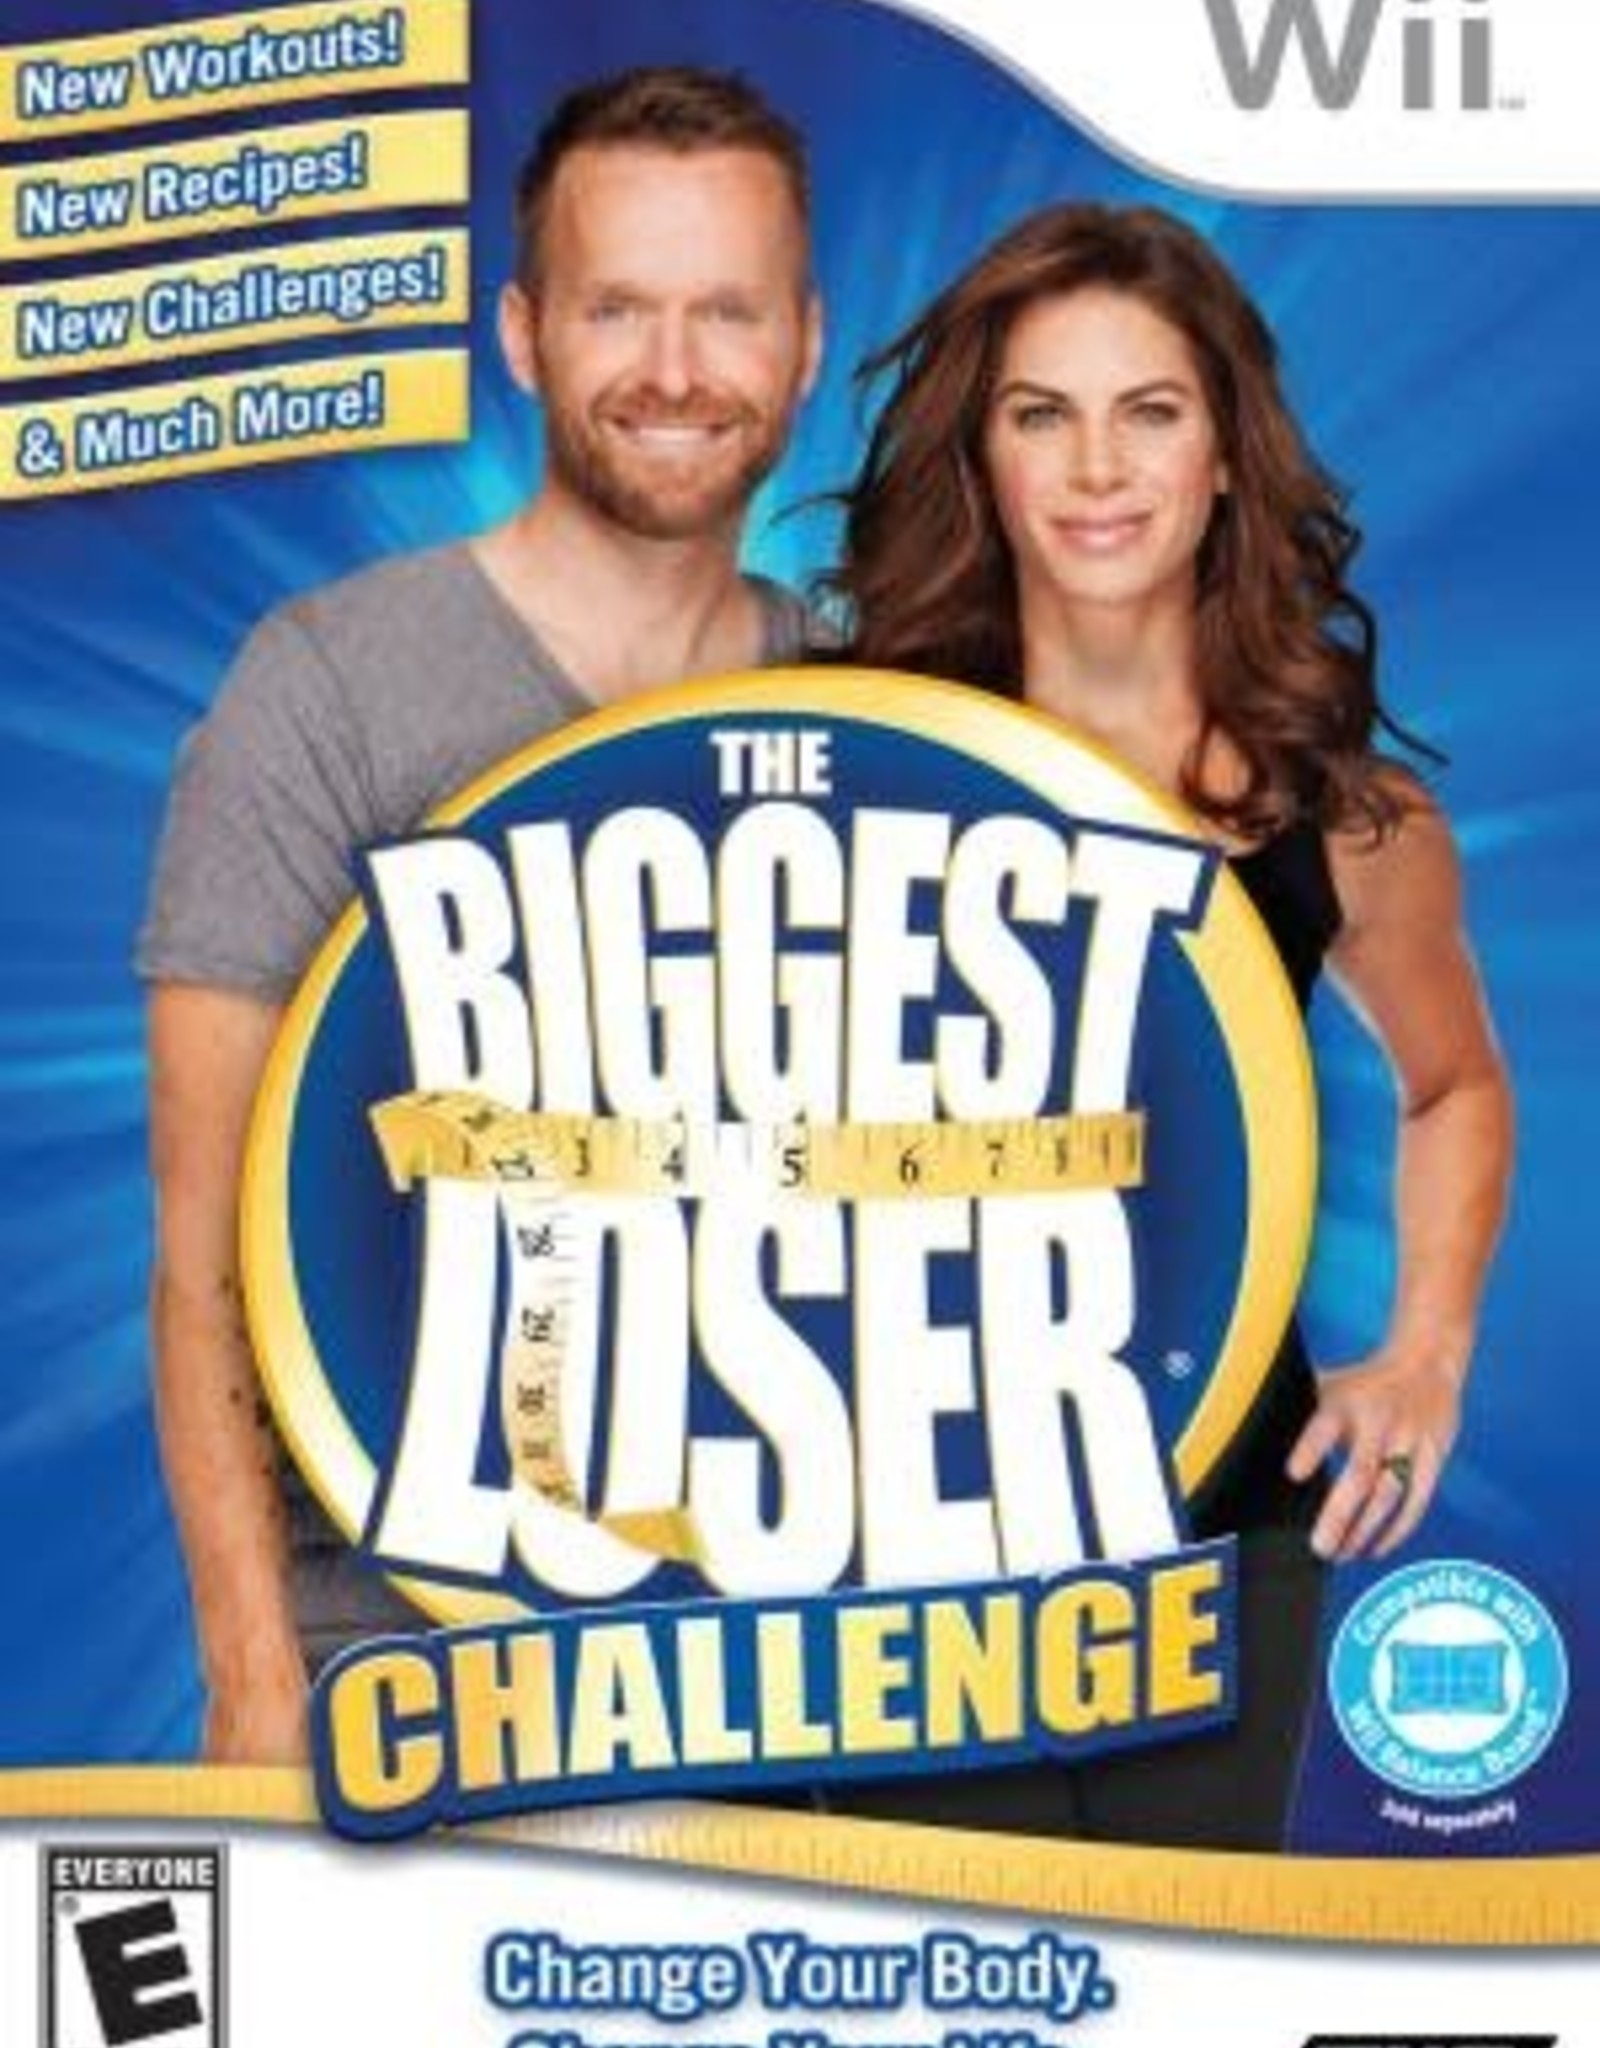 Wii Biggest Loser Challenge, The